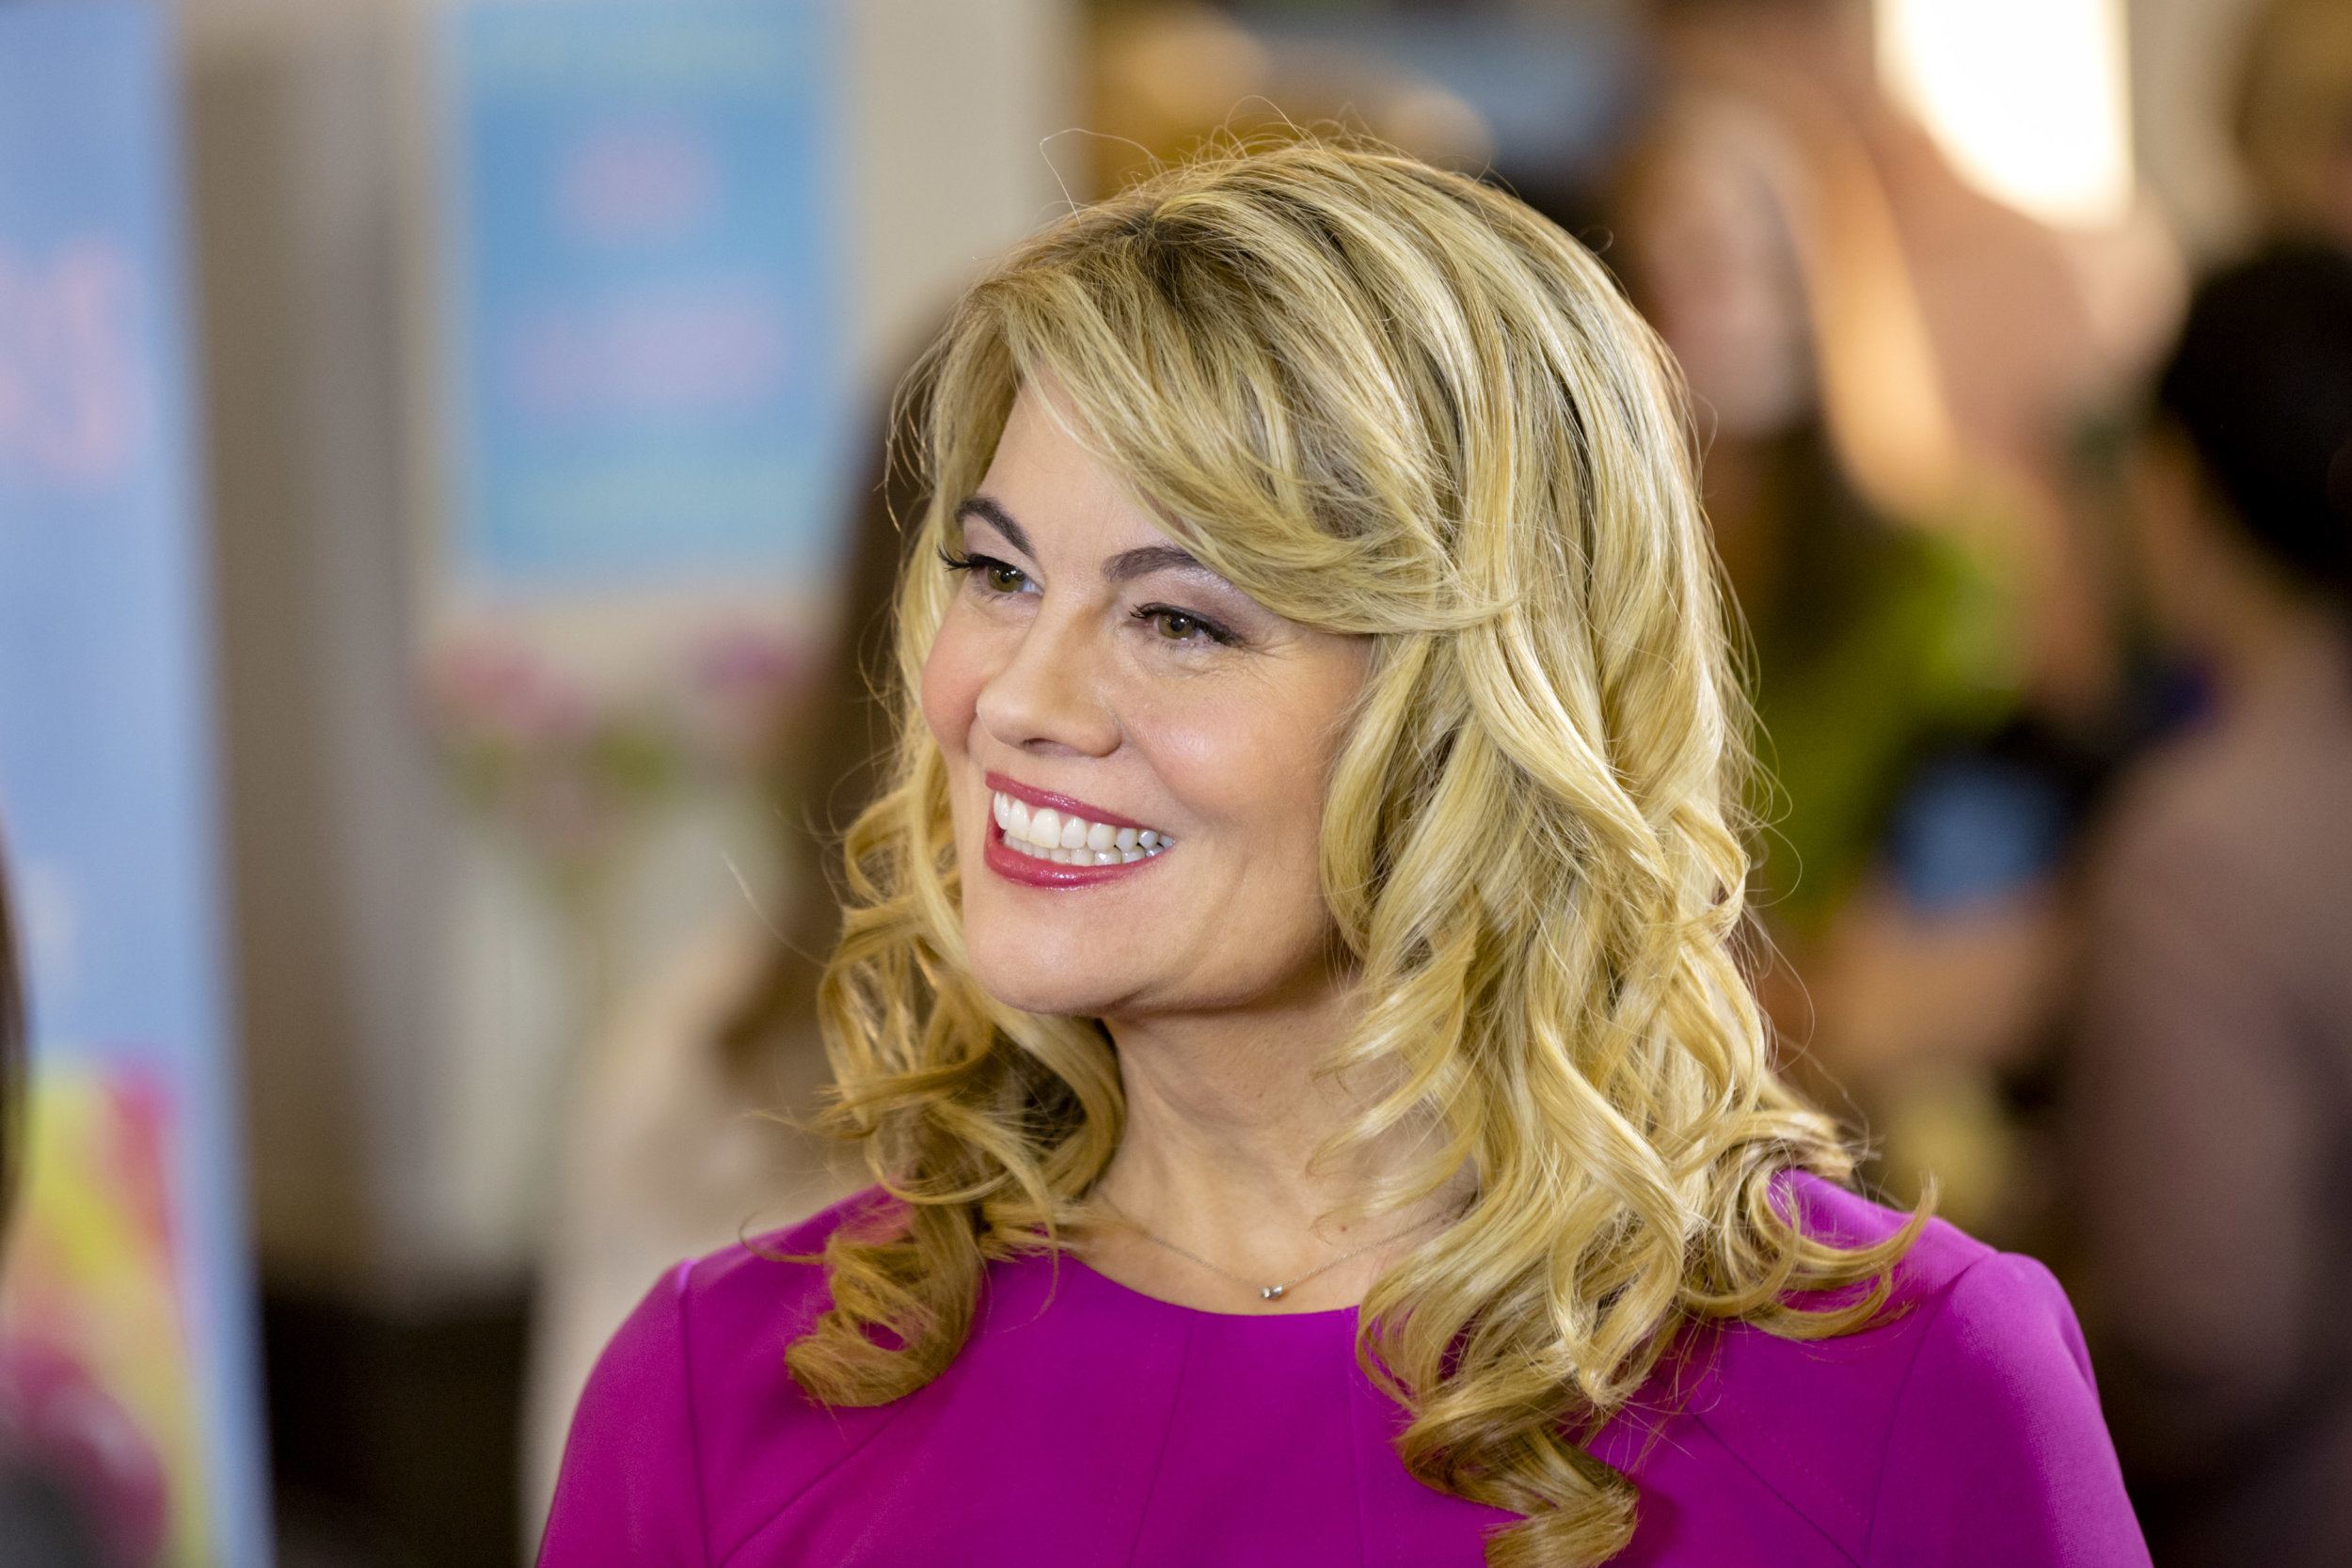 Watch Lisa Whelchel video